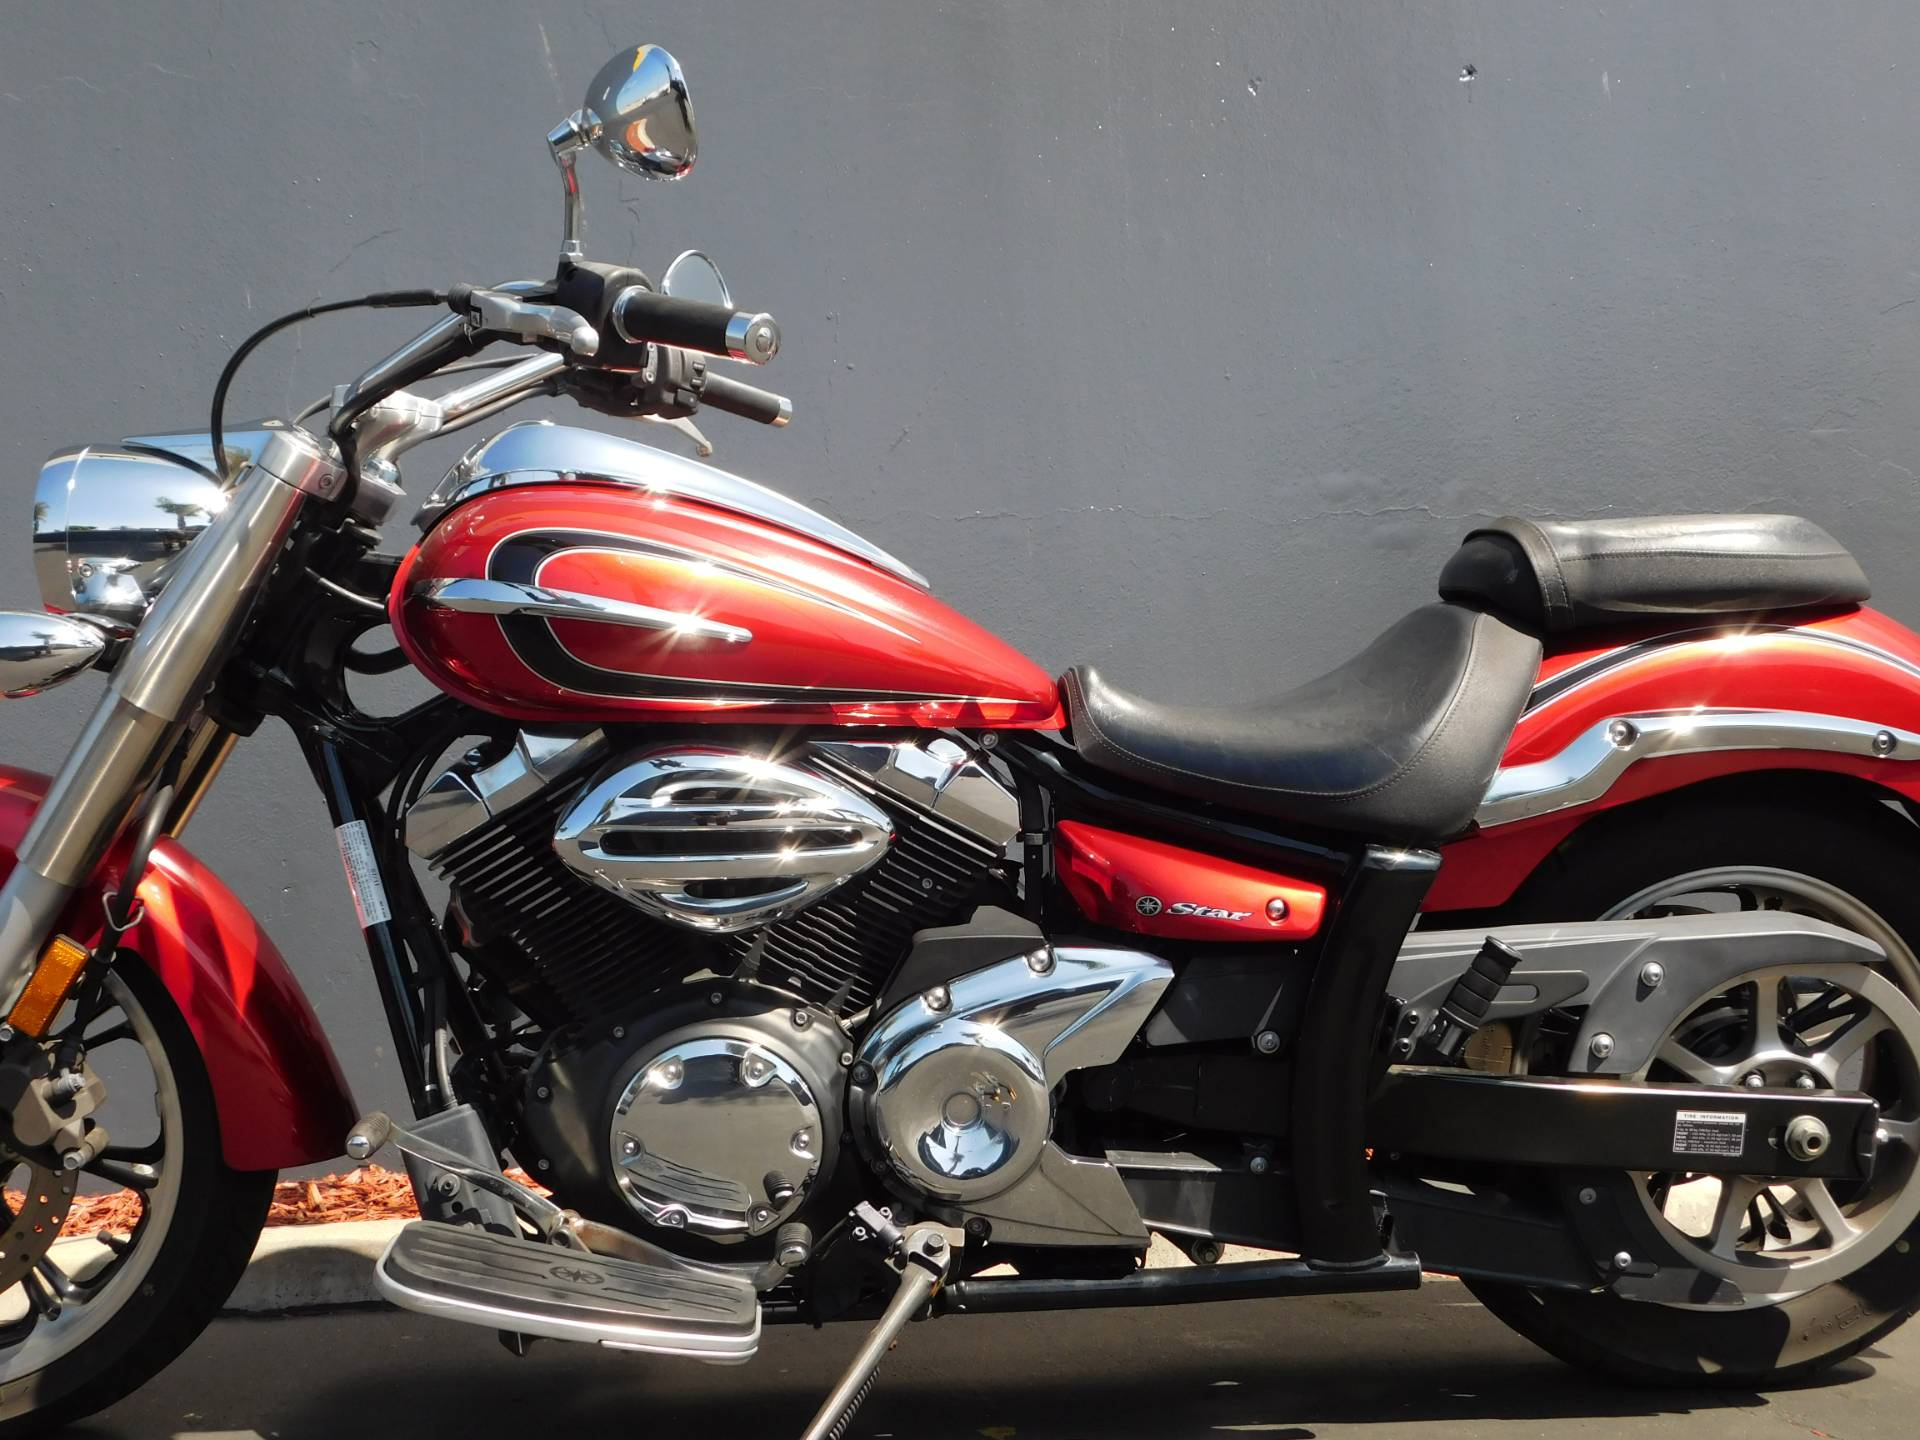 2012 Yamaha V Star 950 in Chula Vista, California - Photo 20